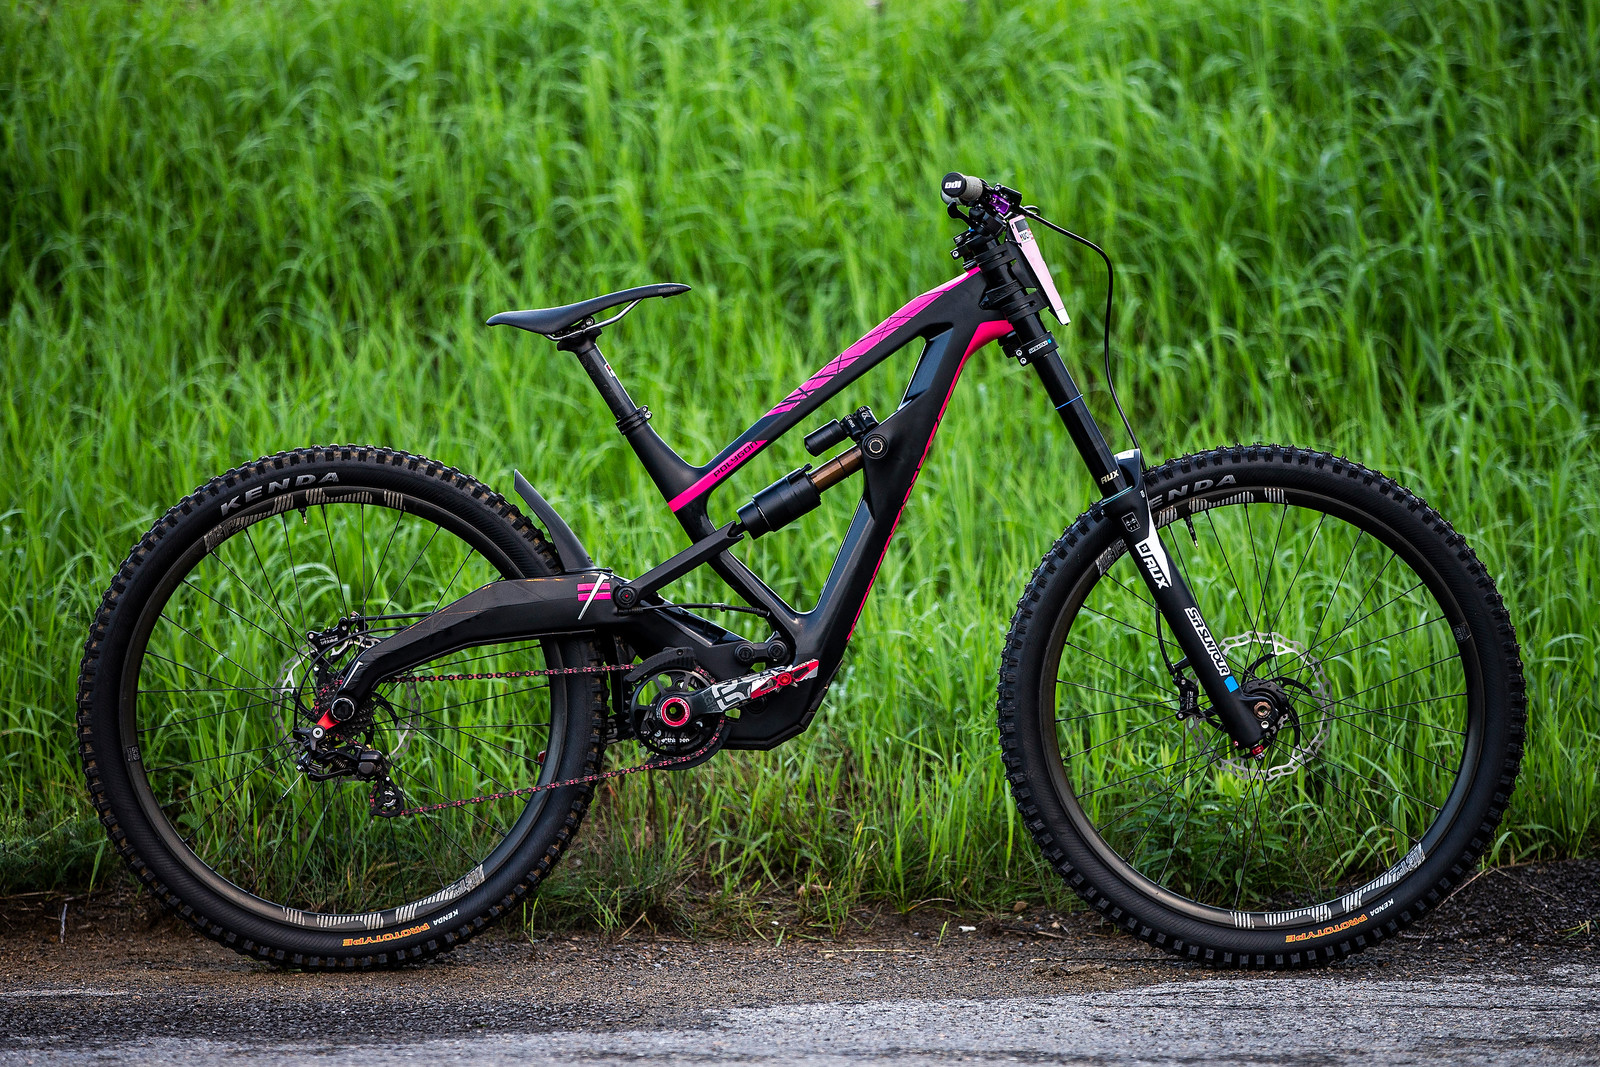 Tracey Hannah's Polygon XQUARONE DH at the MSA World Cup - Tracey Hannah's Polygon XQUARONE DH - Mountain Biking Pictures - Vital MTB